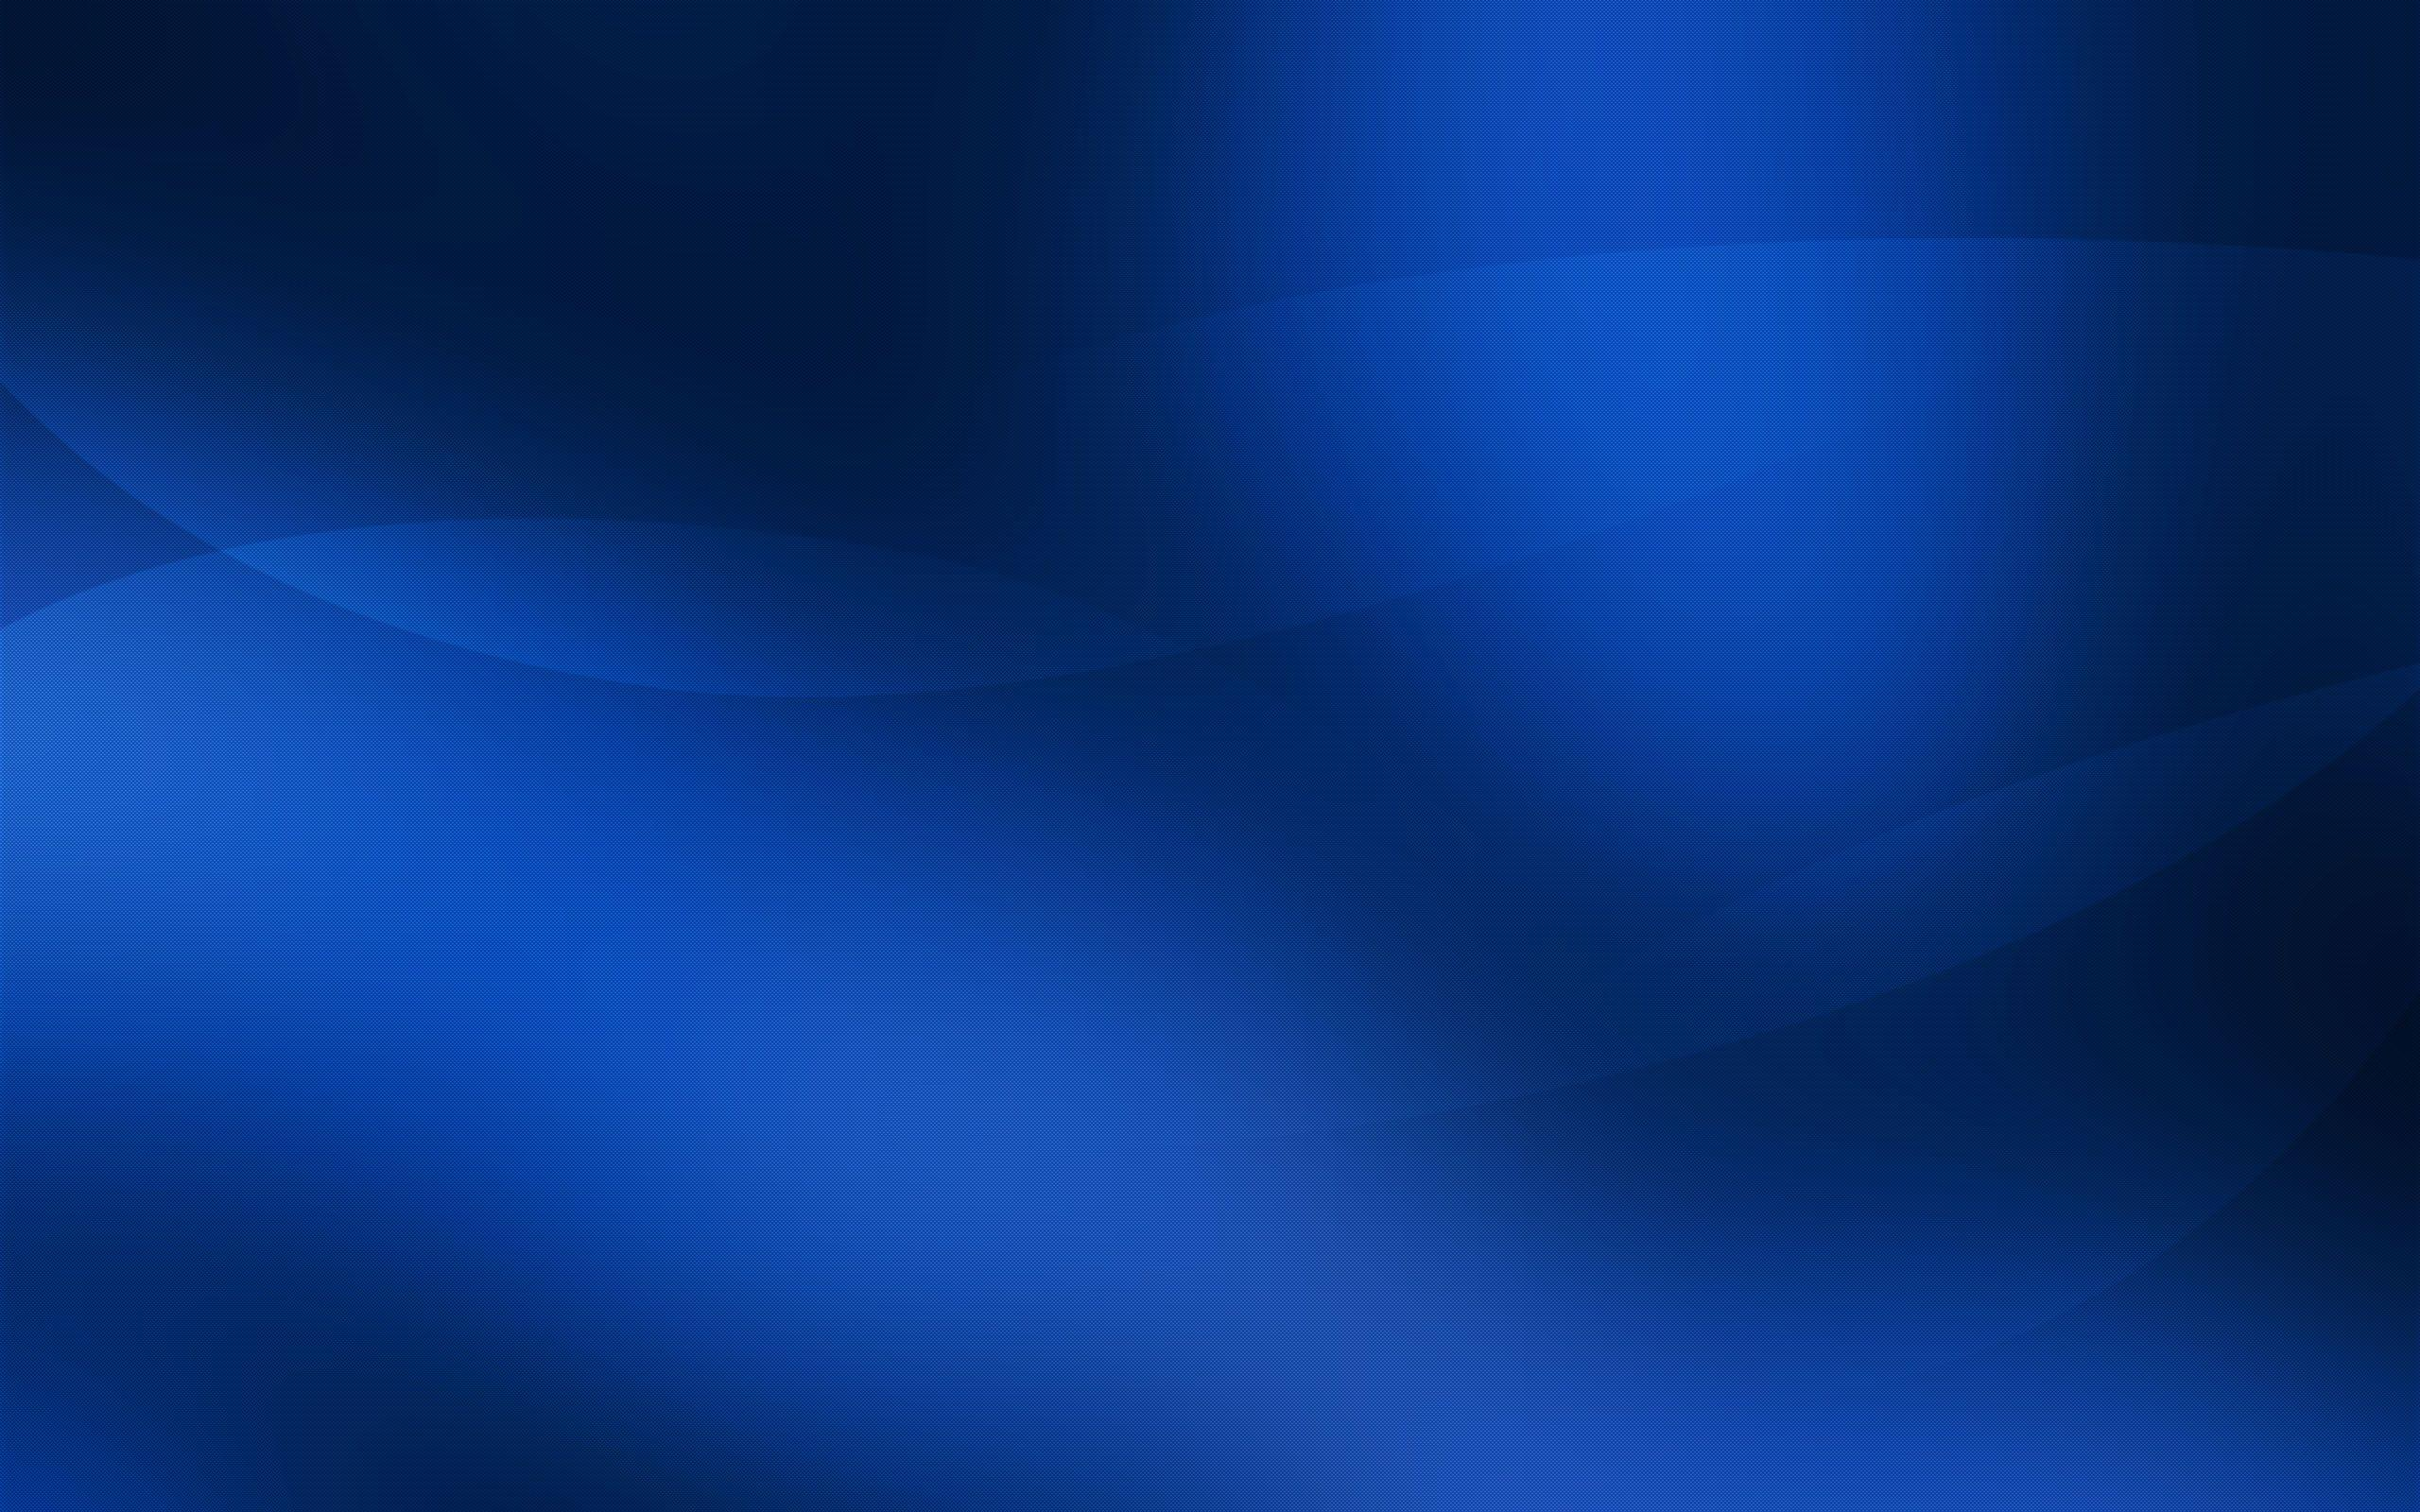 wallpaper background gradient blue - photo #14